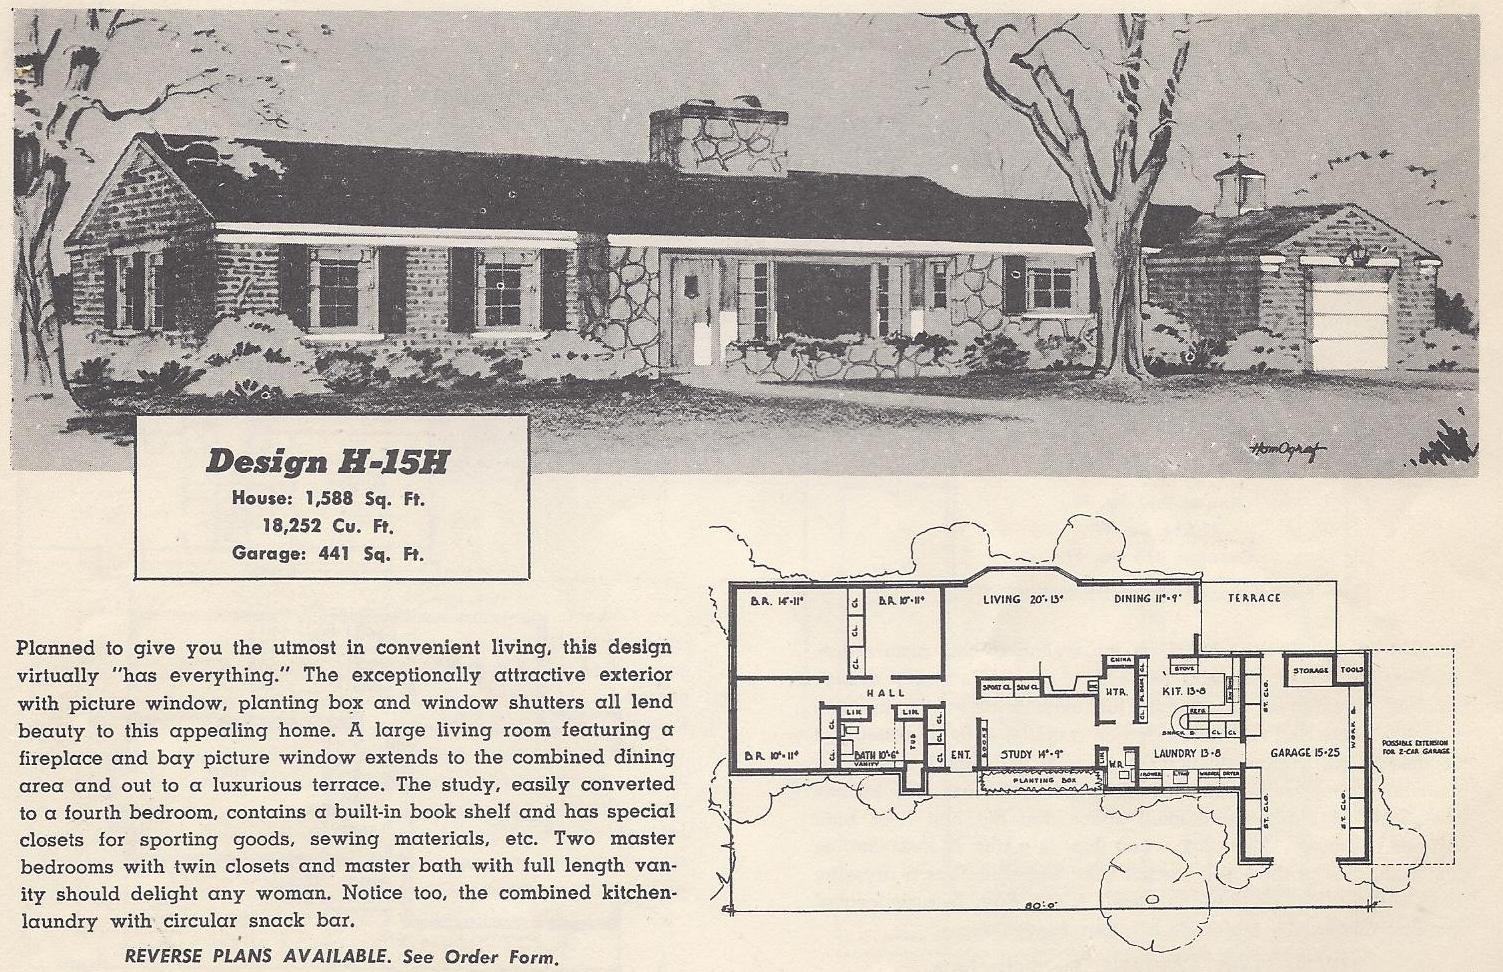 Vintage house plans 15h antique alter ego Vintage home architecture